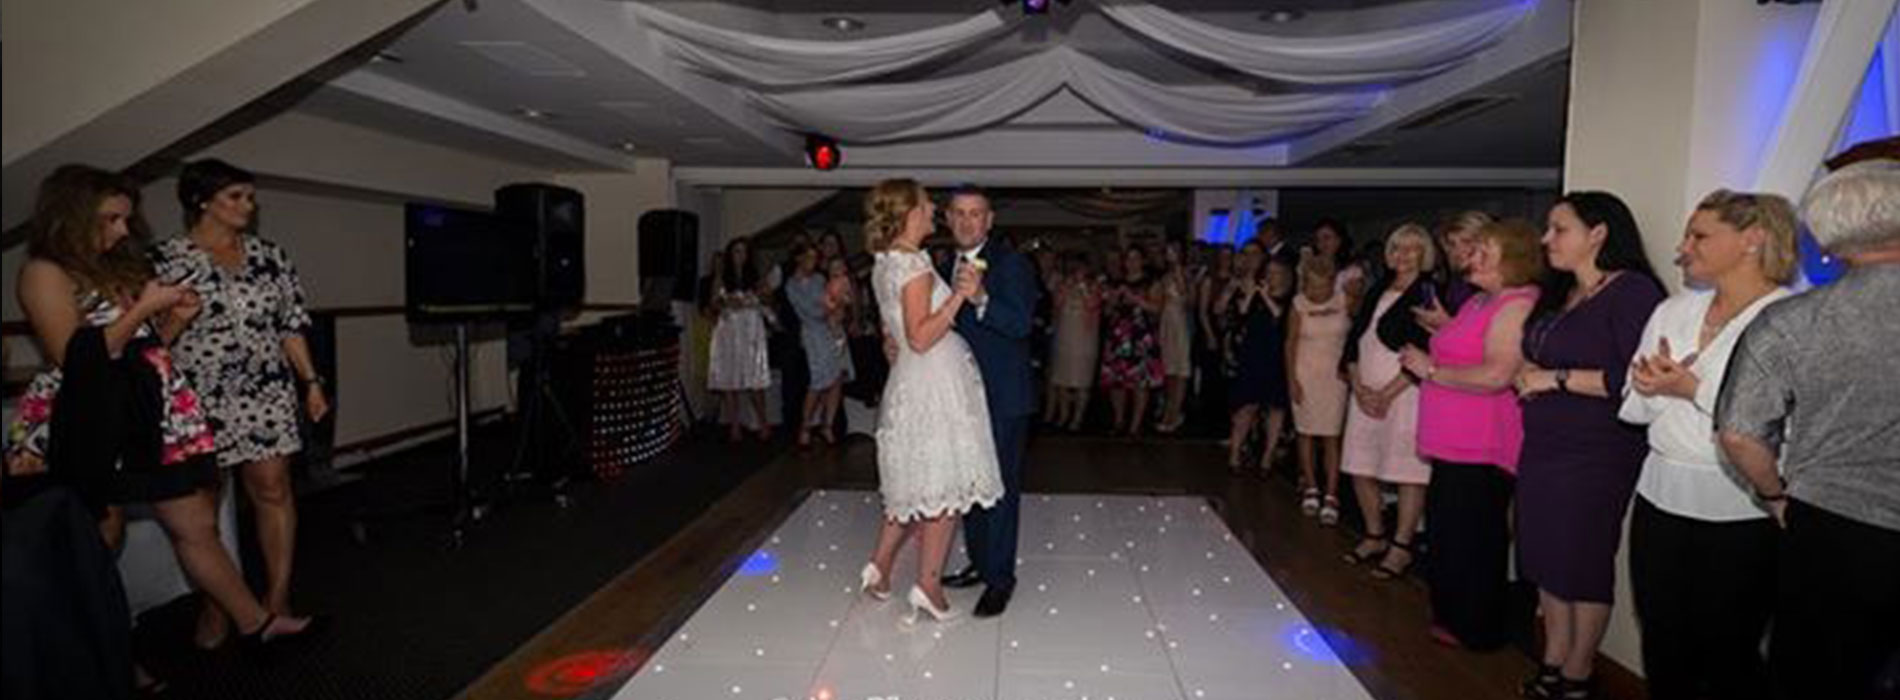 The Almondvale Suite Wedding, West Lothian